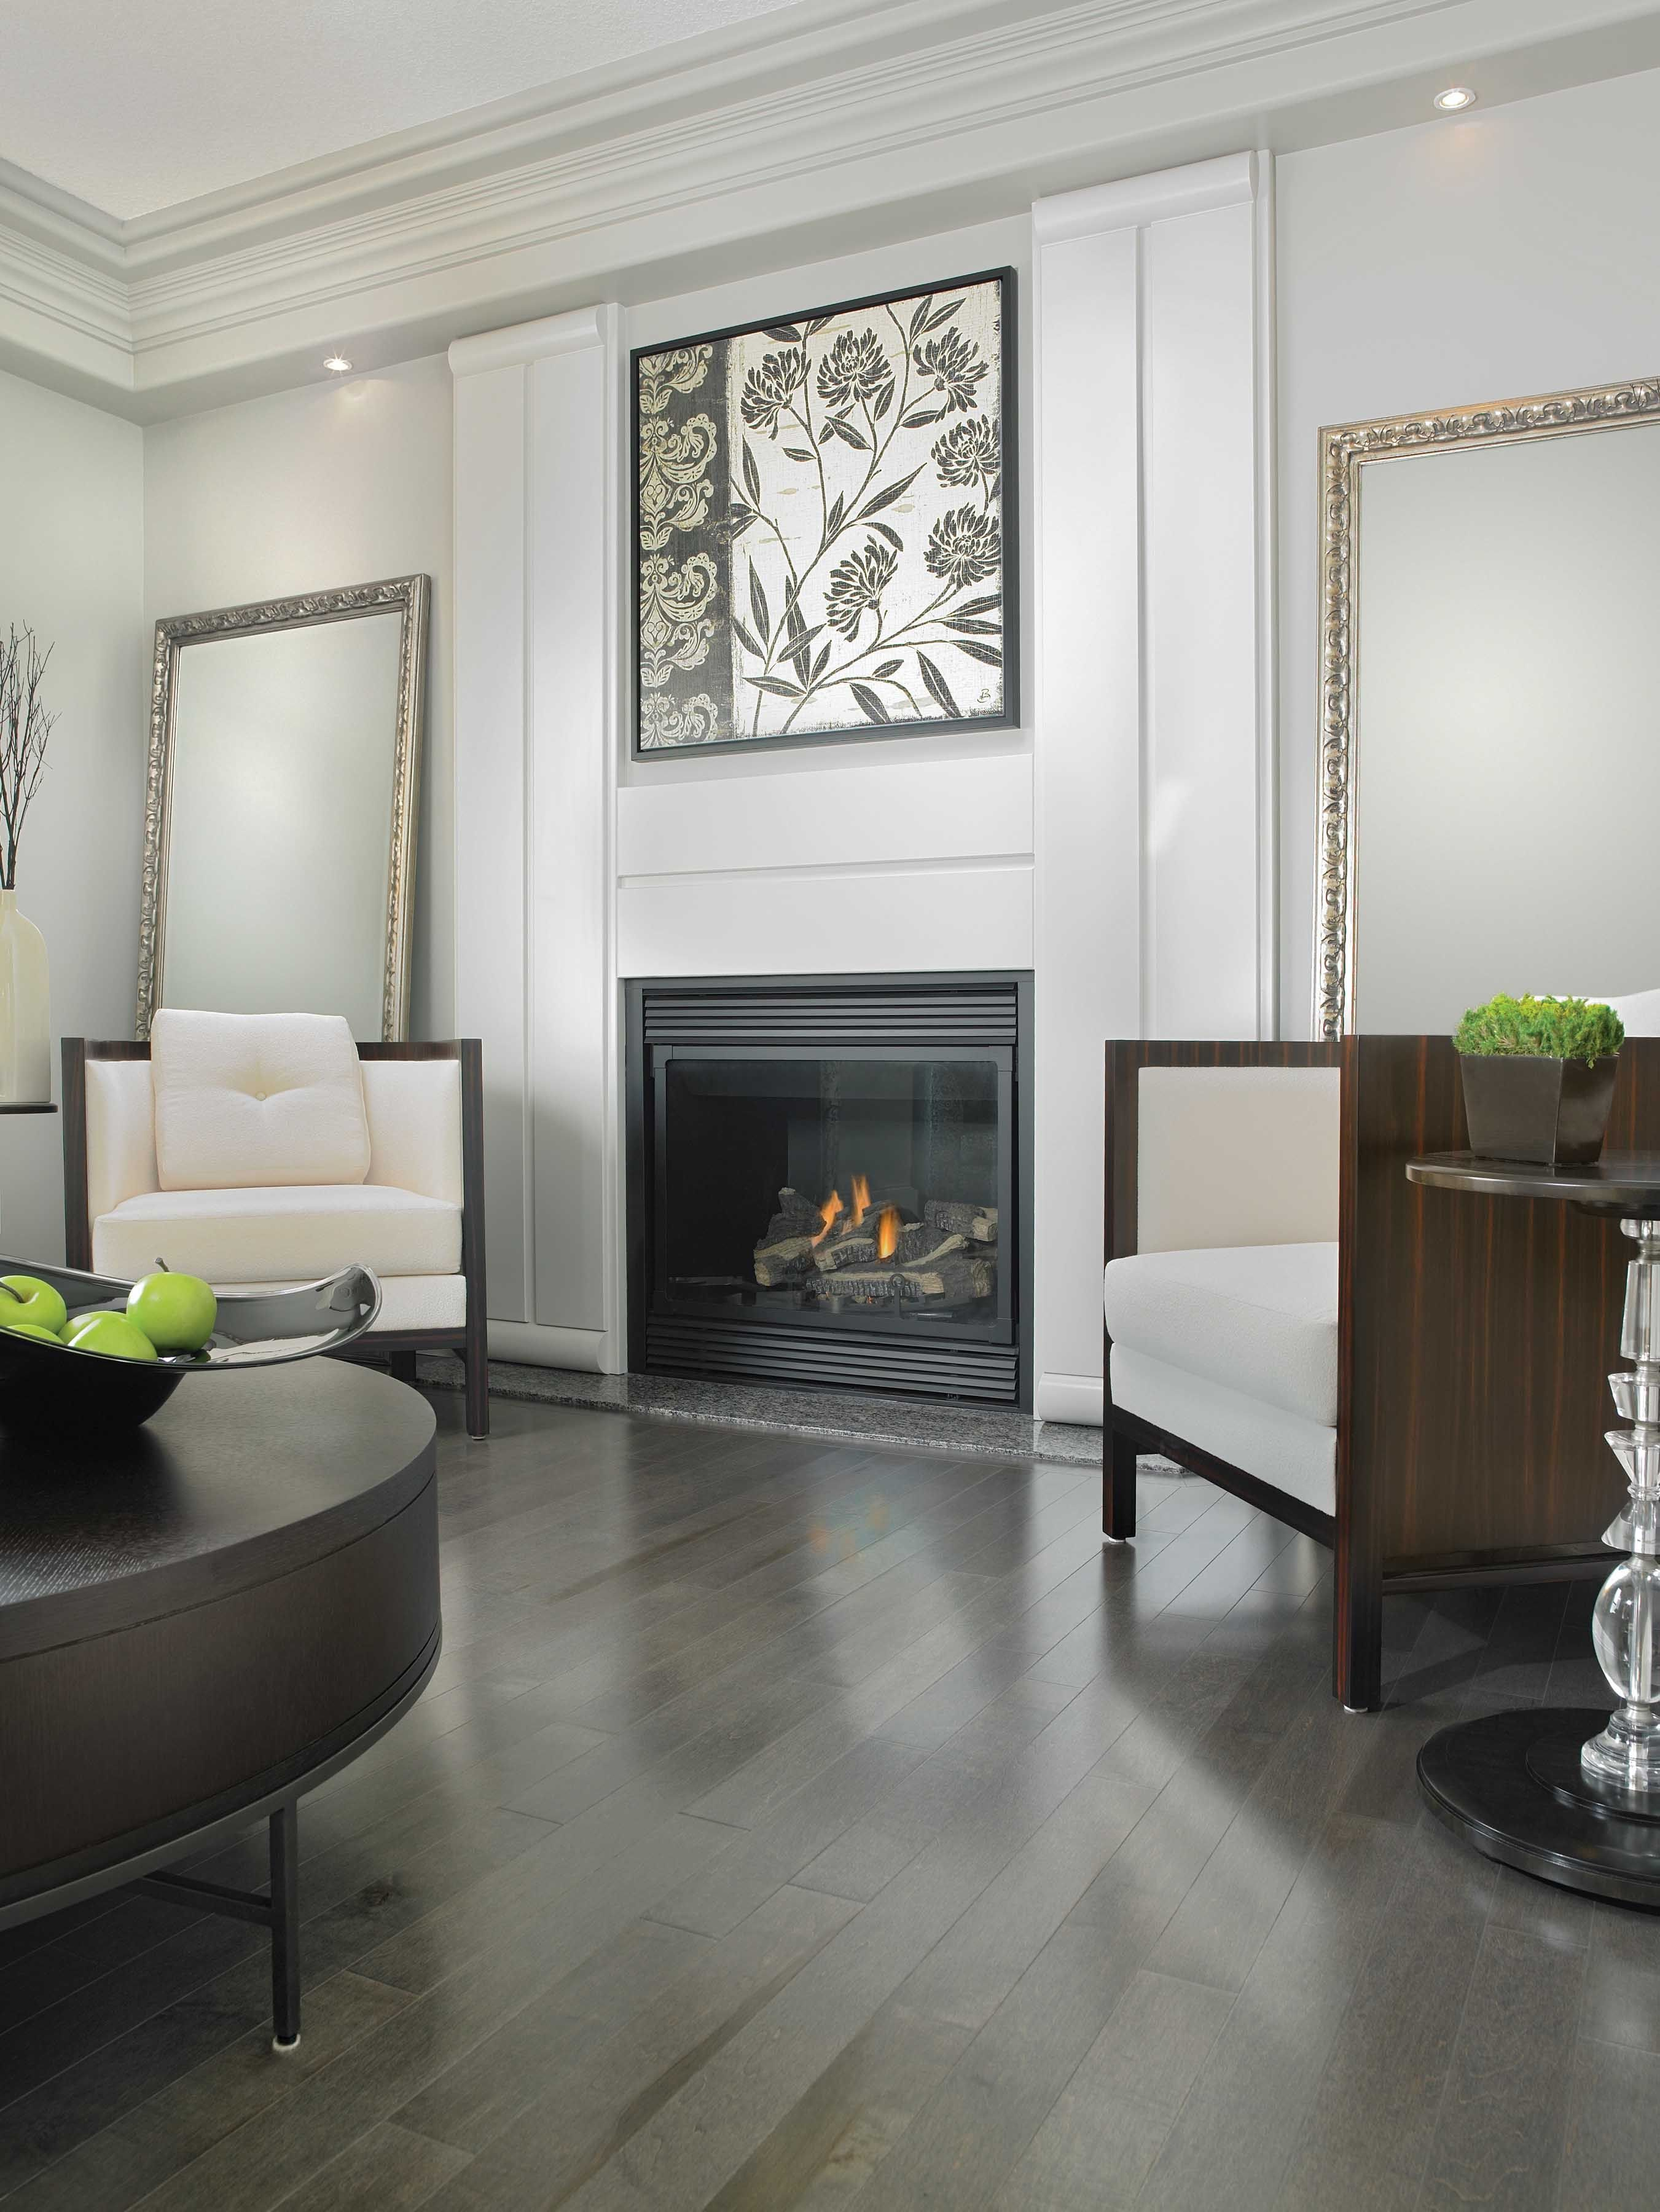 Gray Walls With Light Hardwood Floors (With images